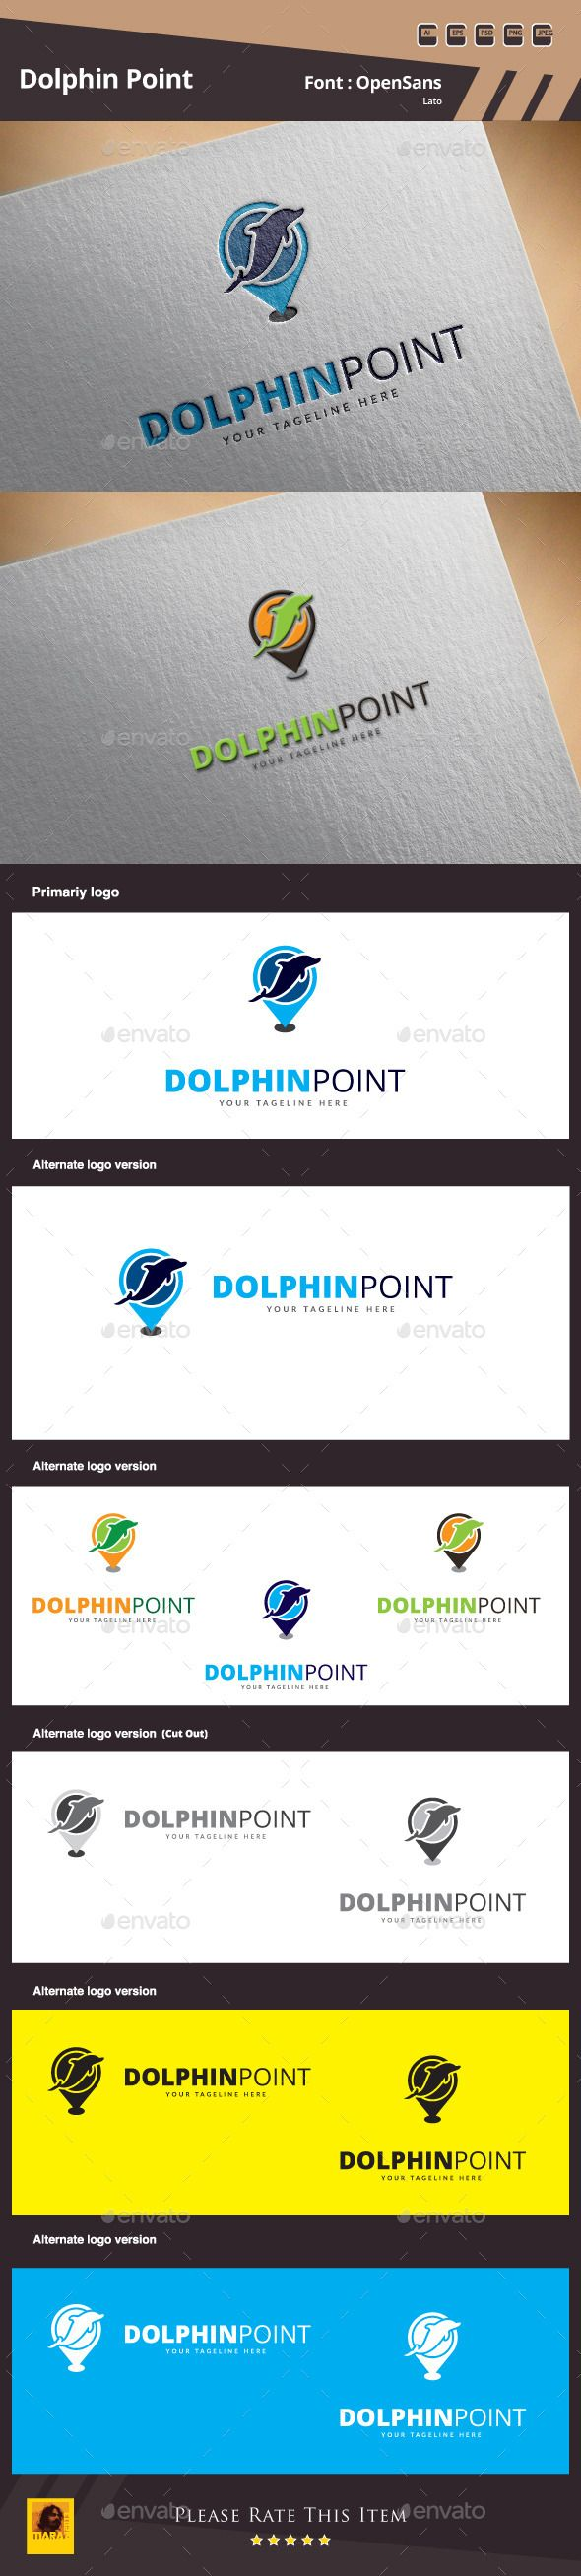 Dolphin Point Logo Template by maraz2013 Dolphin Point Logo Template Suitable for: �20Design Studios �20Photography �20Web Pages �20Software and Apps �20Video Games and Clans